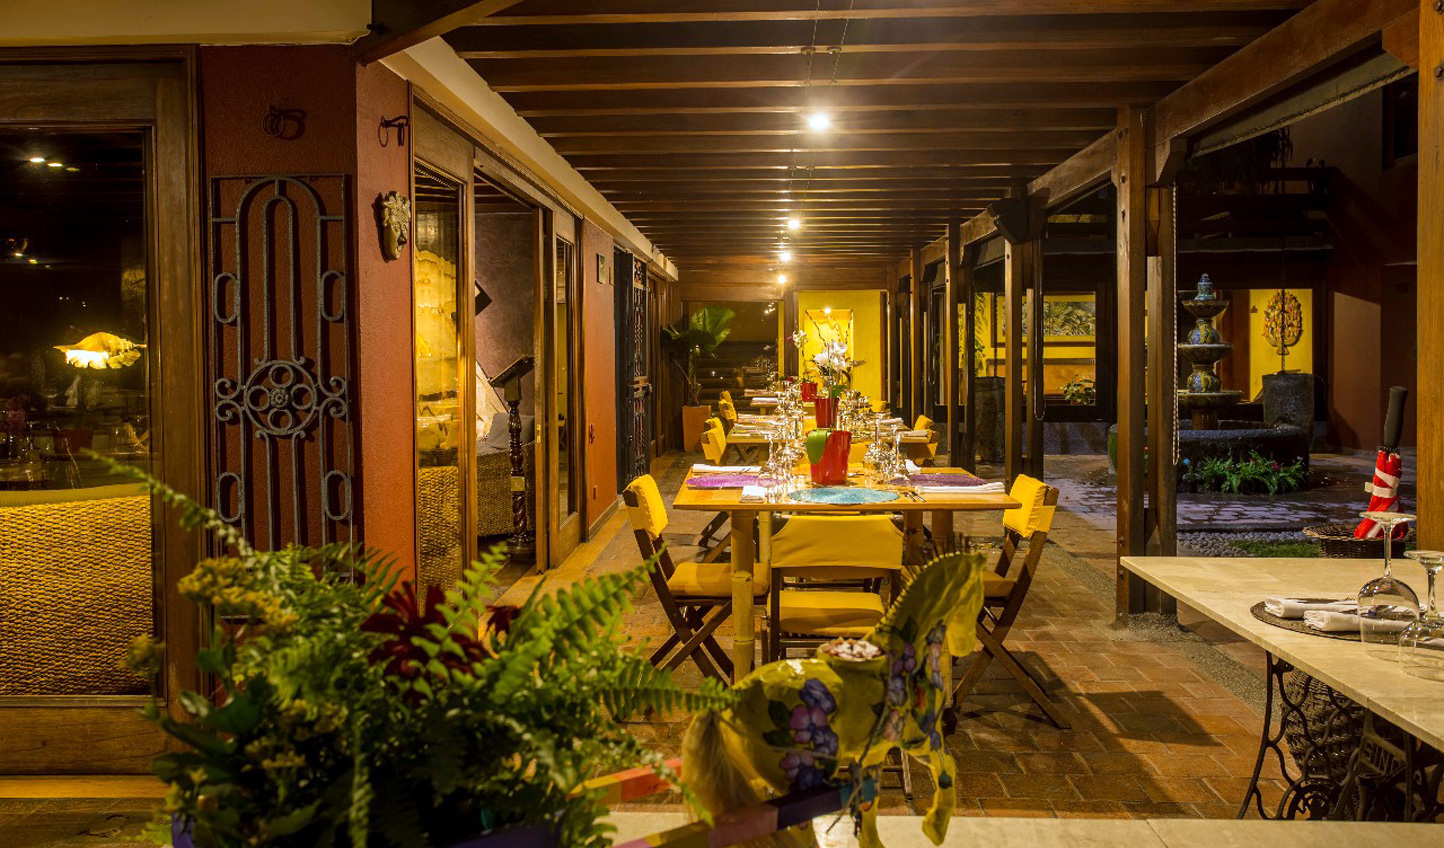 Indulge in some delicious Colombian cuisine